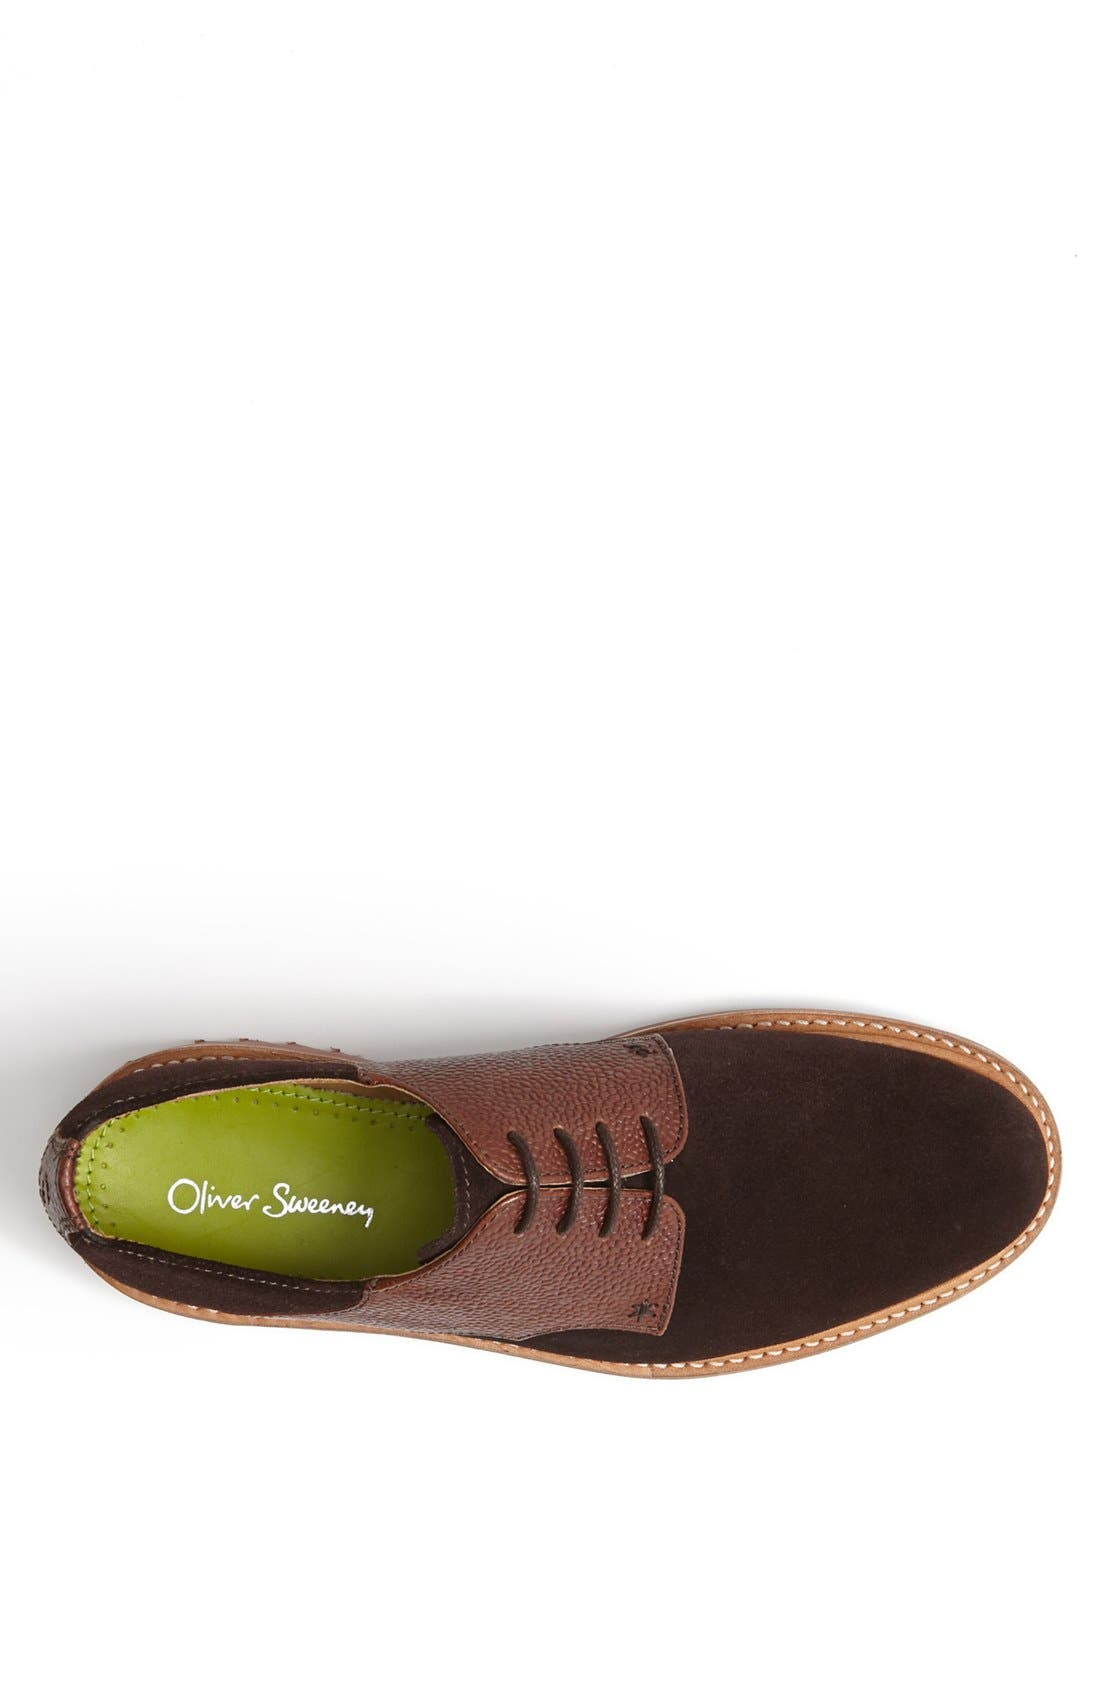 Alternate Image 3  - Oliver Sweeney 'Sutton' Saddle Shoe